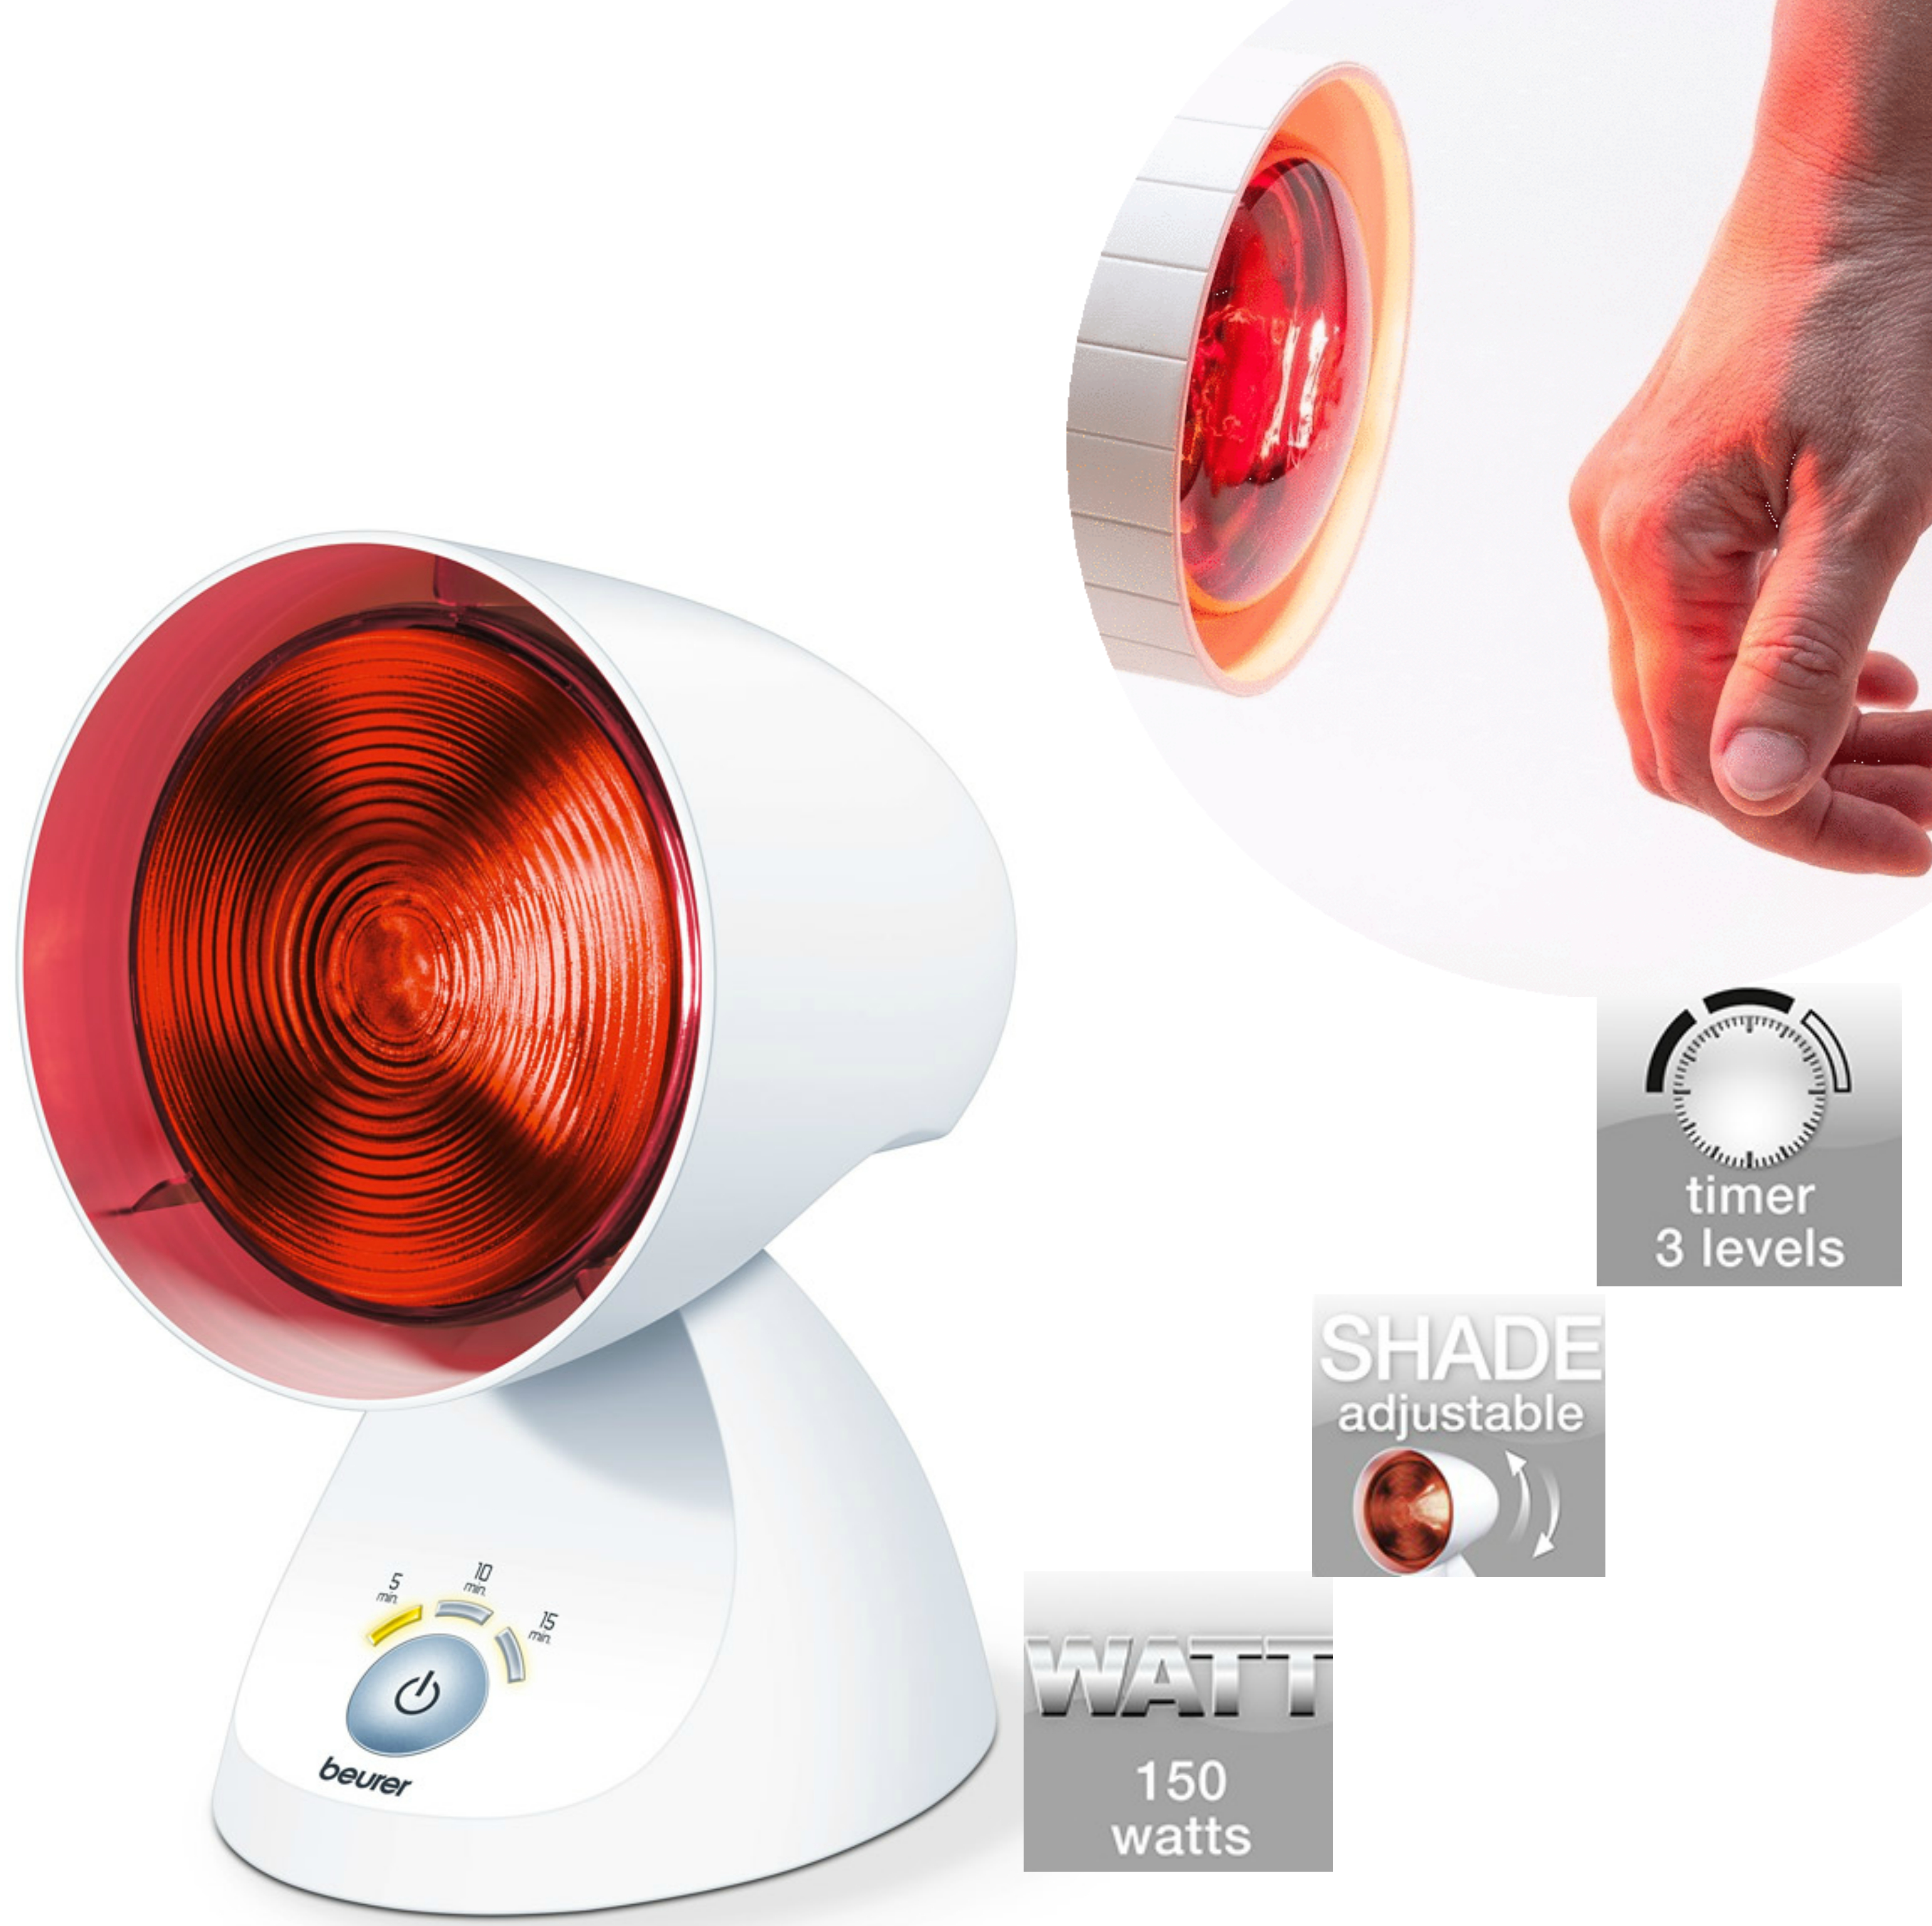 Beurer IL35 Infra Red Lamp|Colds Relief / Body Muscular Pain Therapy|Timer|150W|